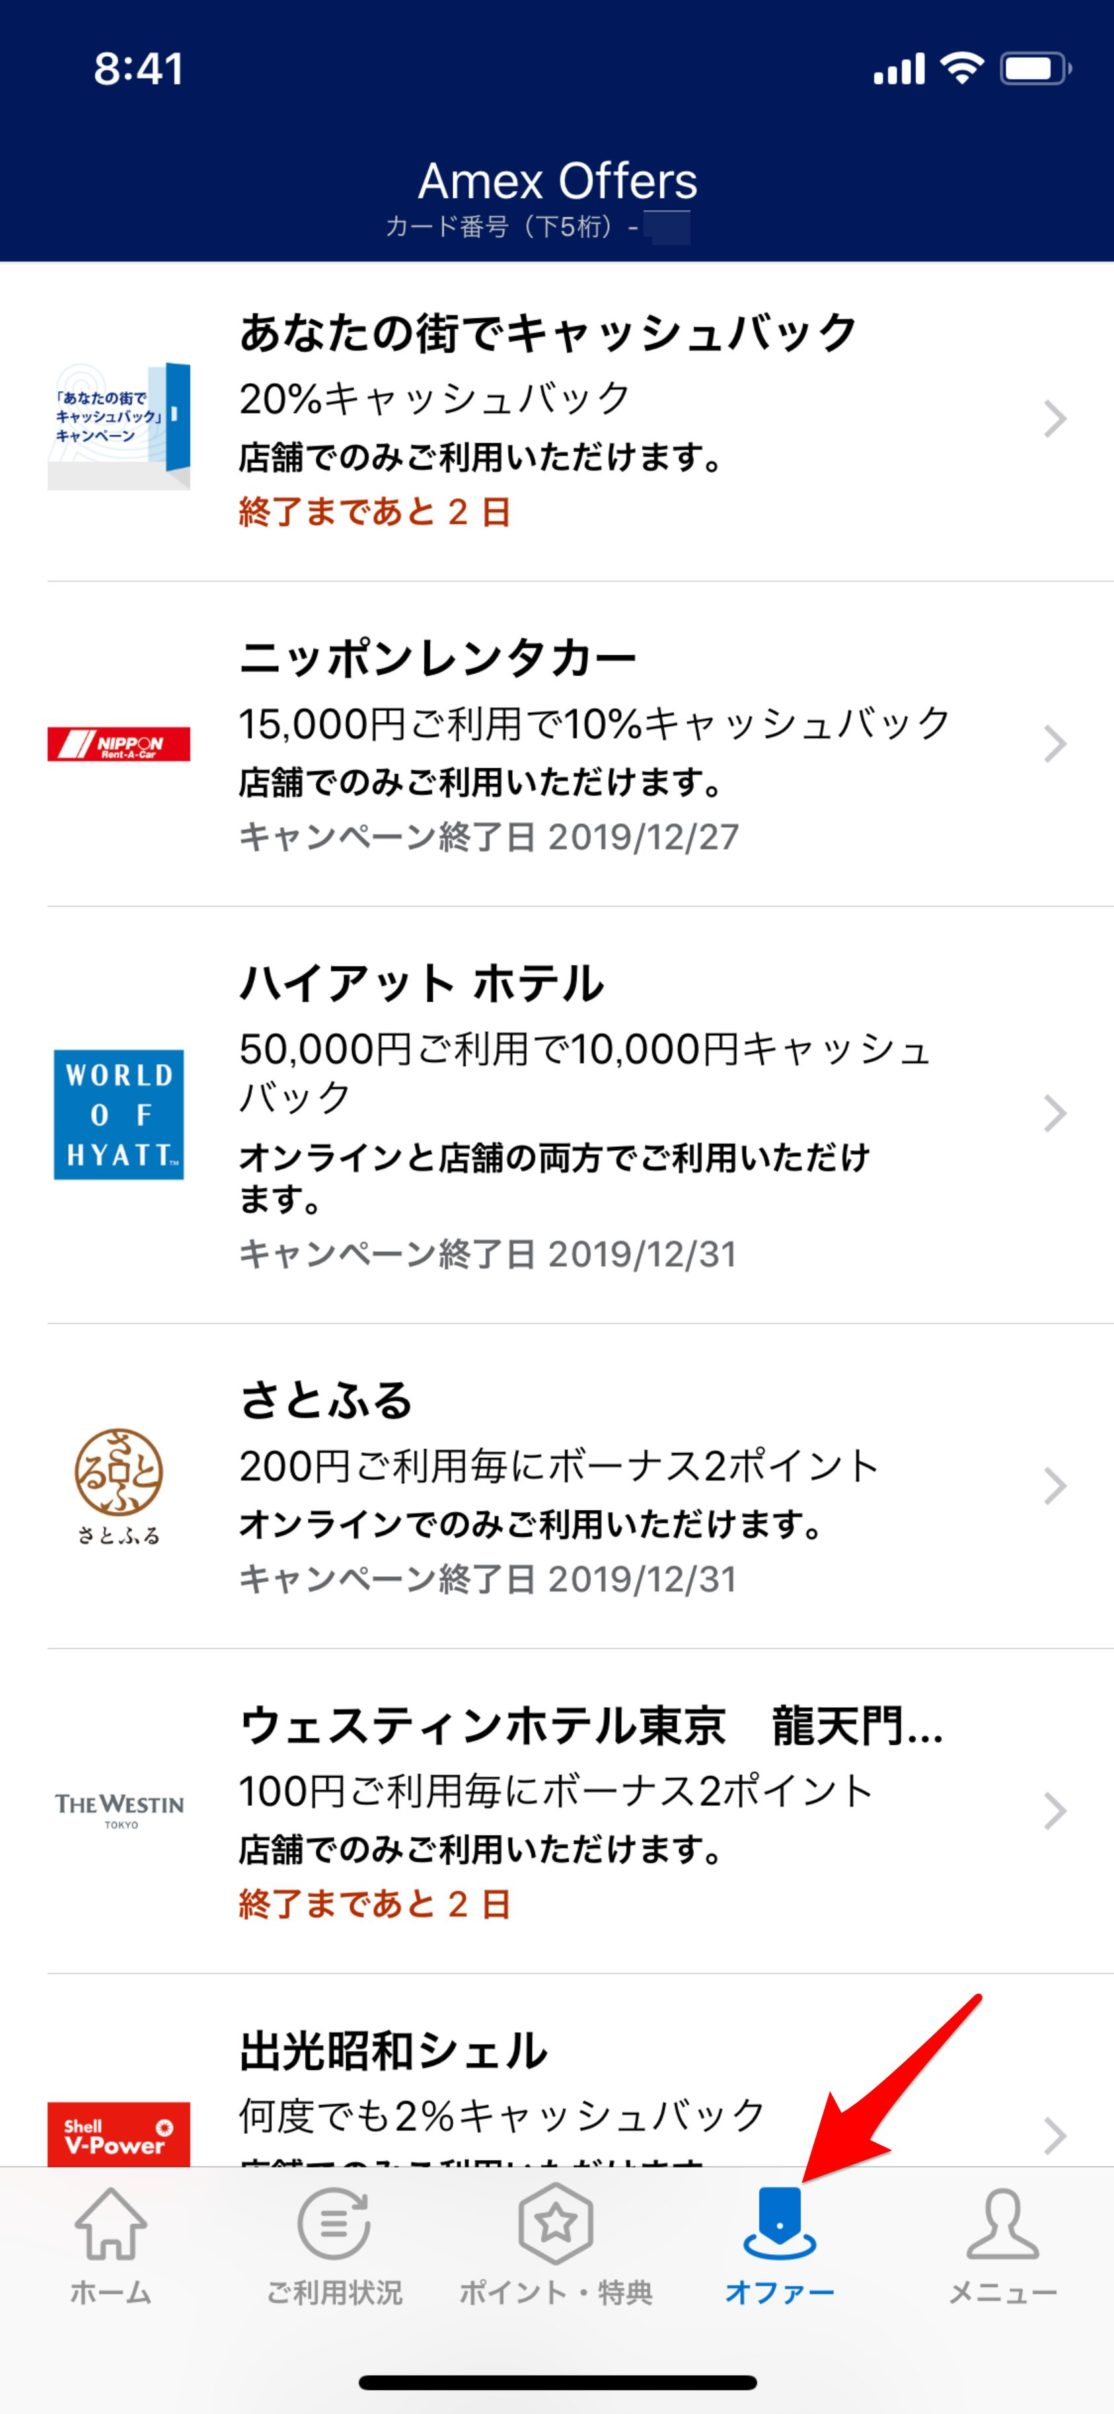 Amex Offers アプリ